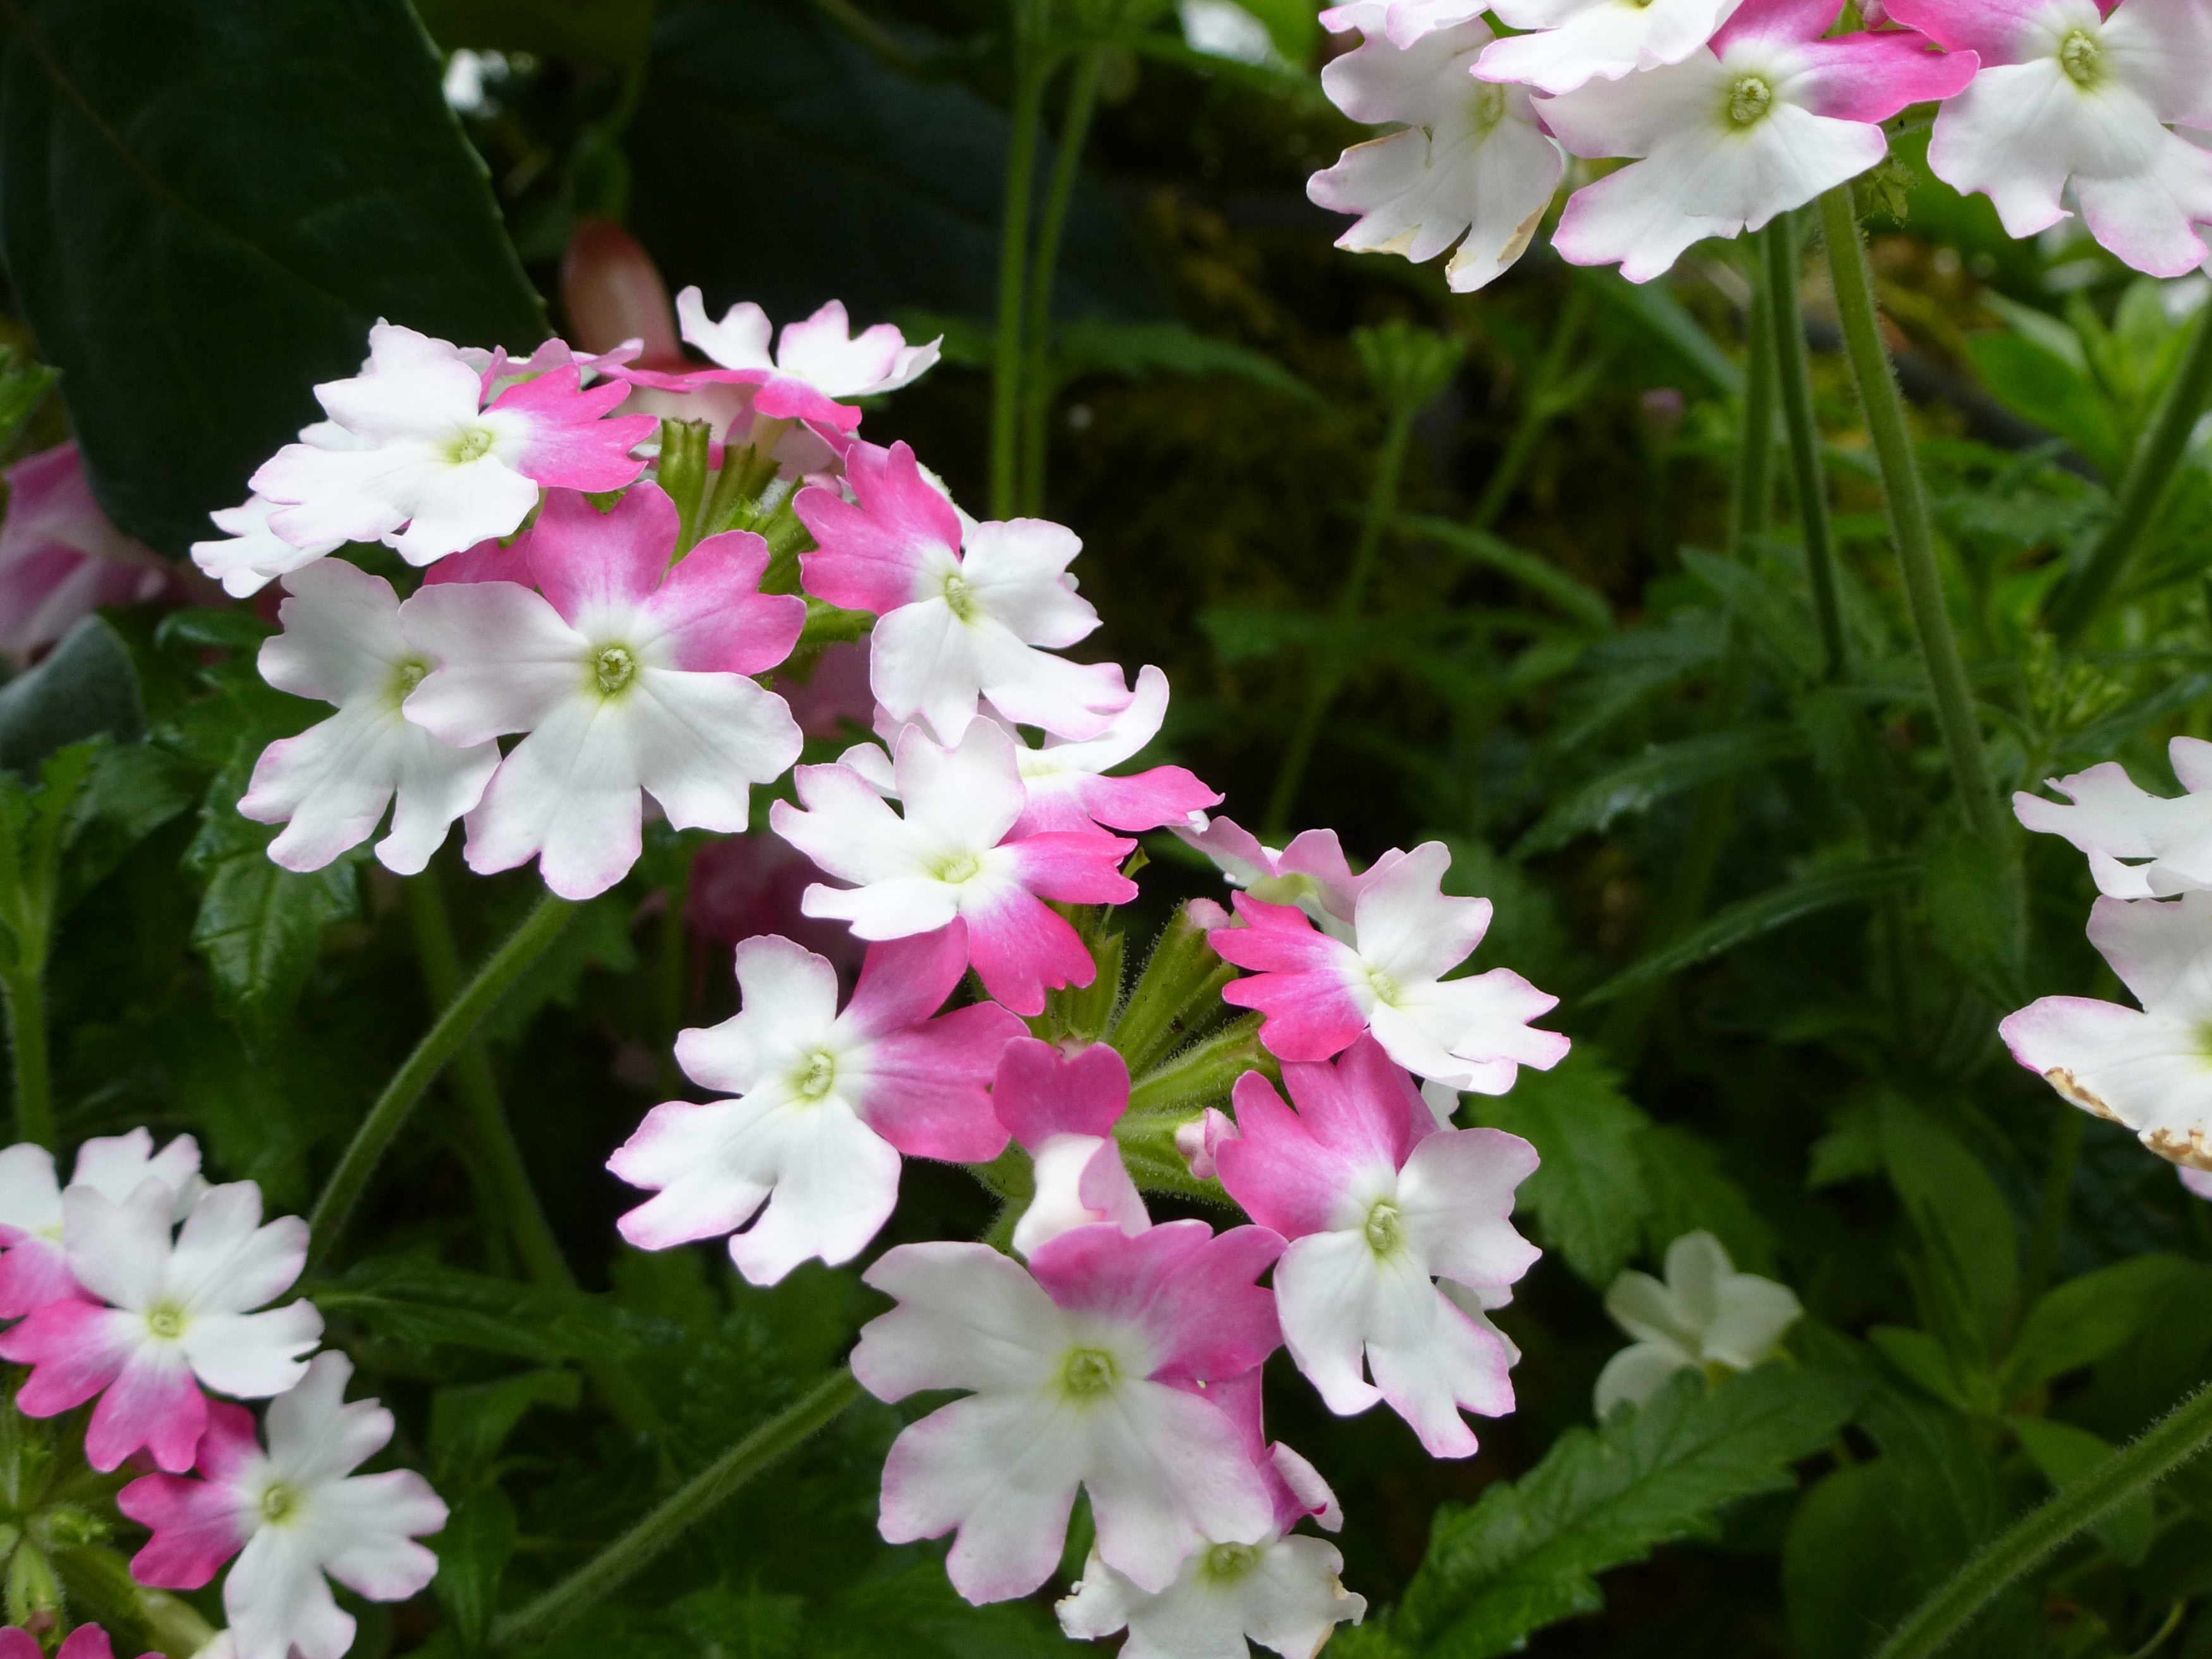 Free Image Of Half White And Pink Flowers